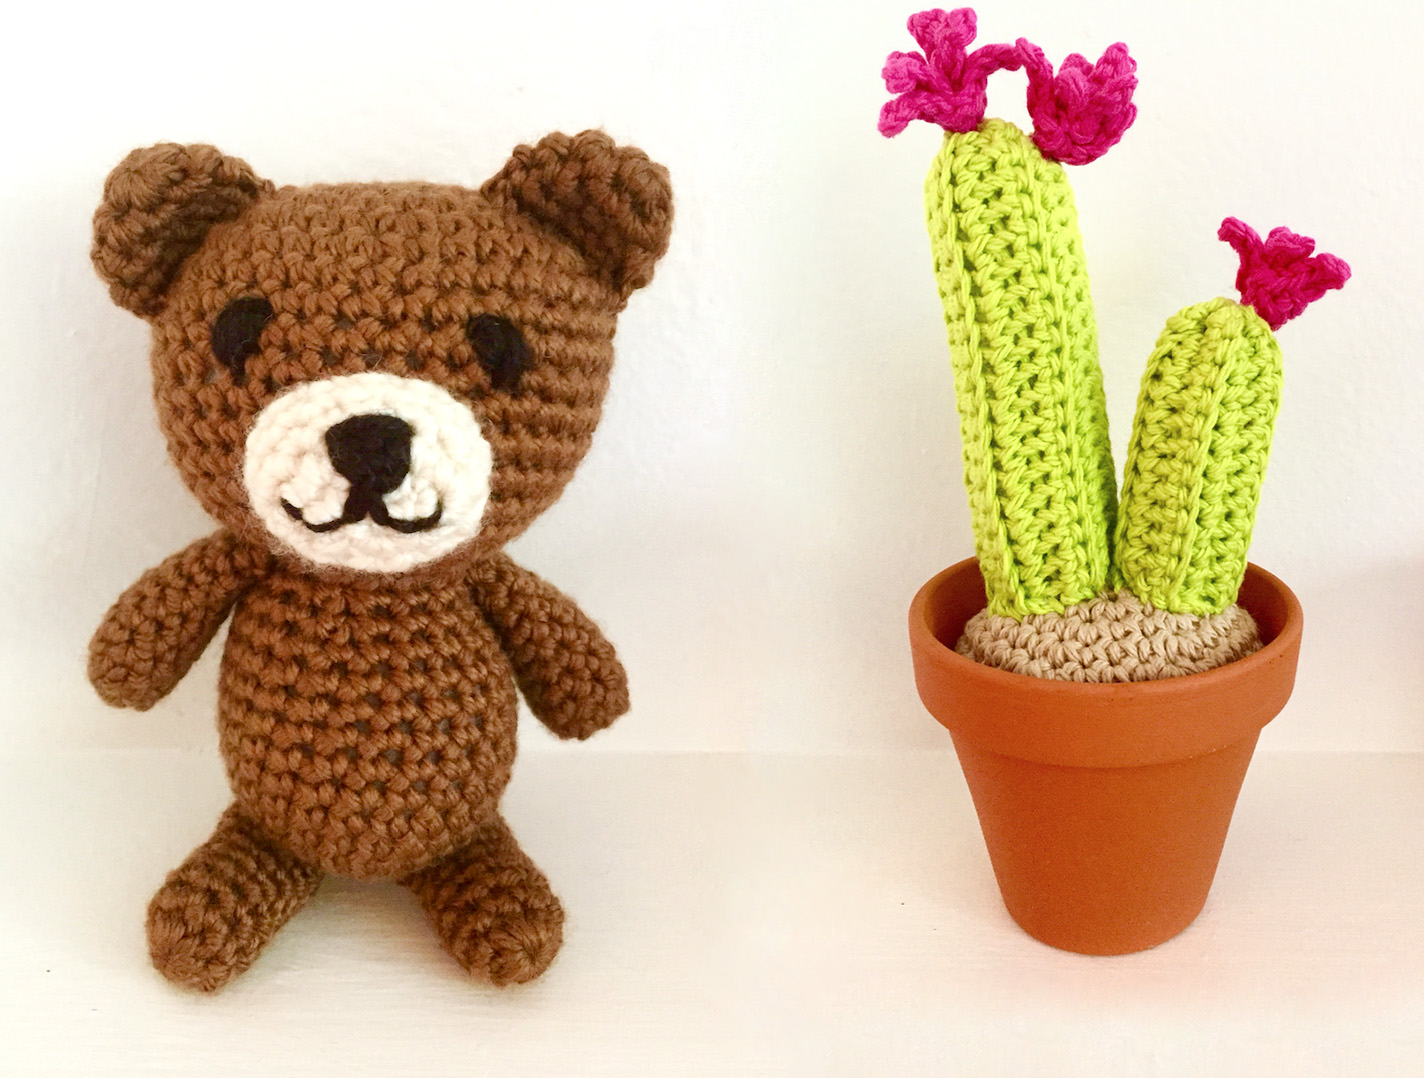 Cactus and Teddy Bear Patterns for Classes at Michaels Stores ...